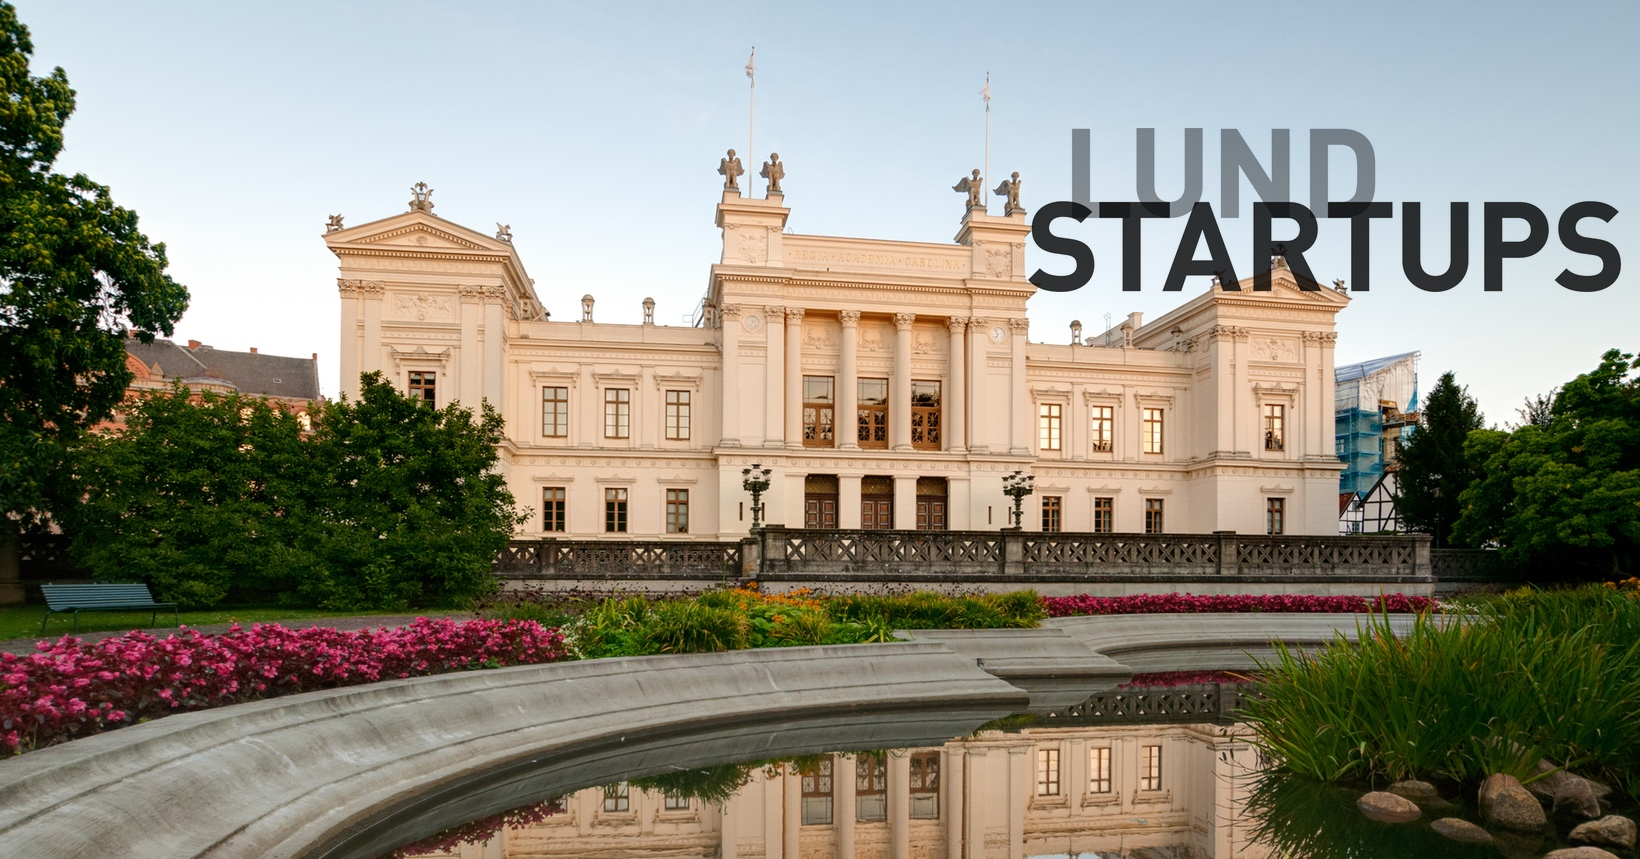 Join lund startups - Working to bring together the startup community in Lund since 2018.